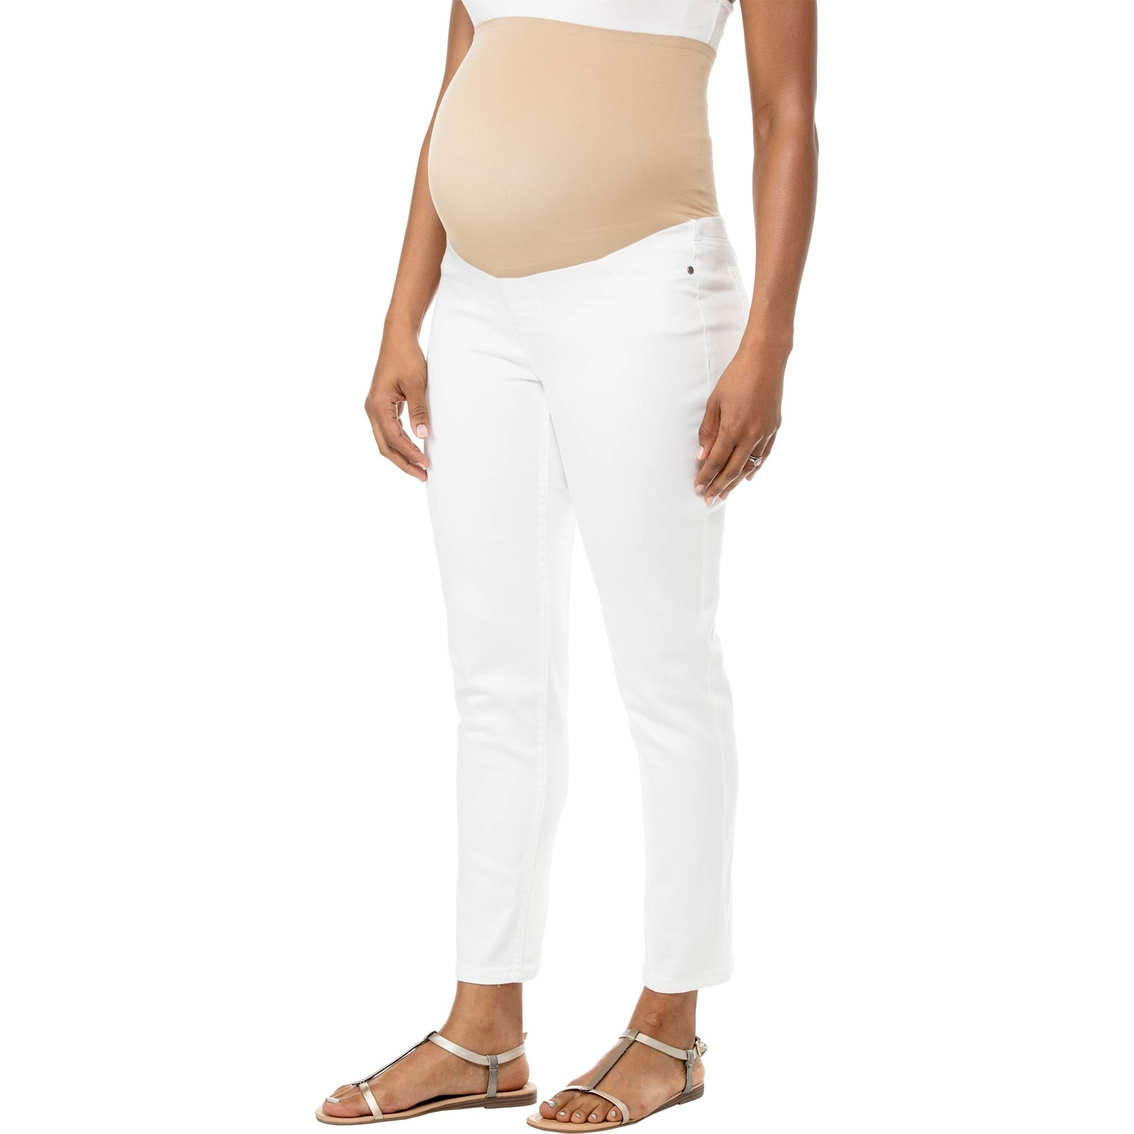 b385c17e85eb9 Liz Lange Maternity Over The Belly Skinny Jeans | Pants | Apparel ...